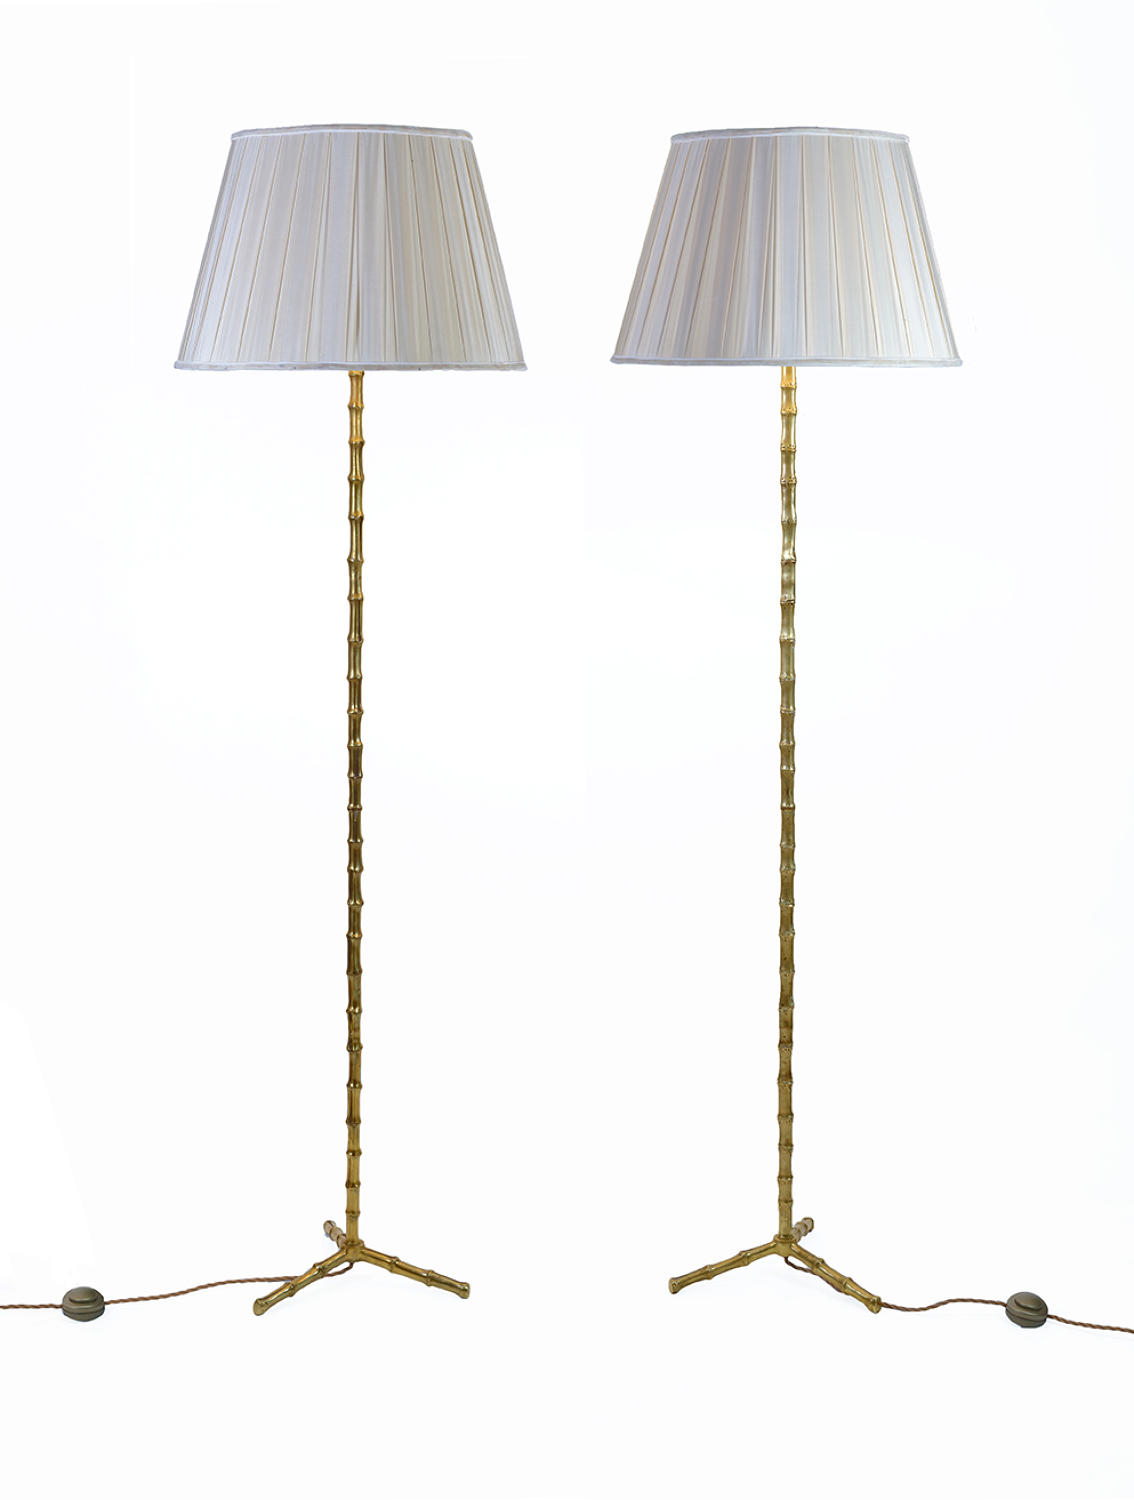 Pair of Bamboo Floor Lamps